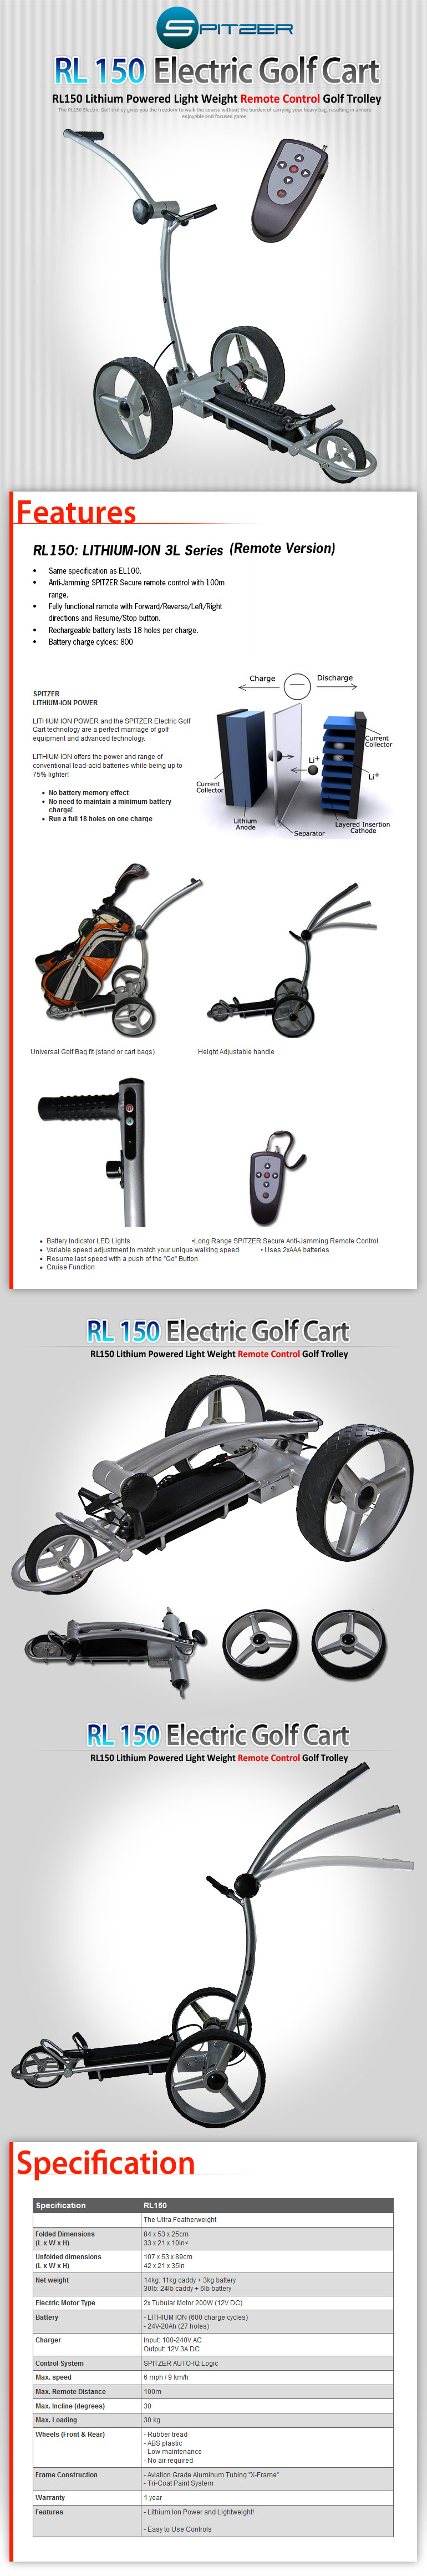 SPITZER RL150 Lithium Powered Light Weight Remote Control Golf ... on trailer specs, golf pull carts, golf push carts, food specs, golf warehouse carts, 2009 club car precedent specs,